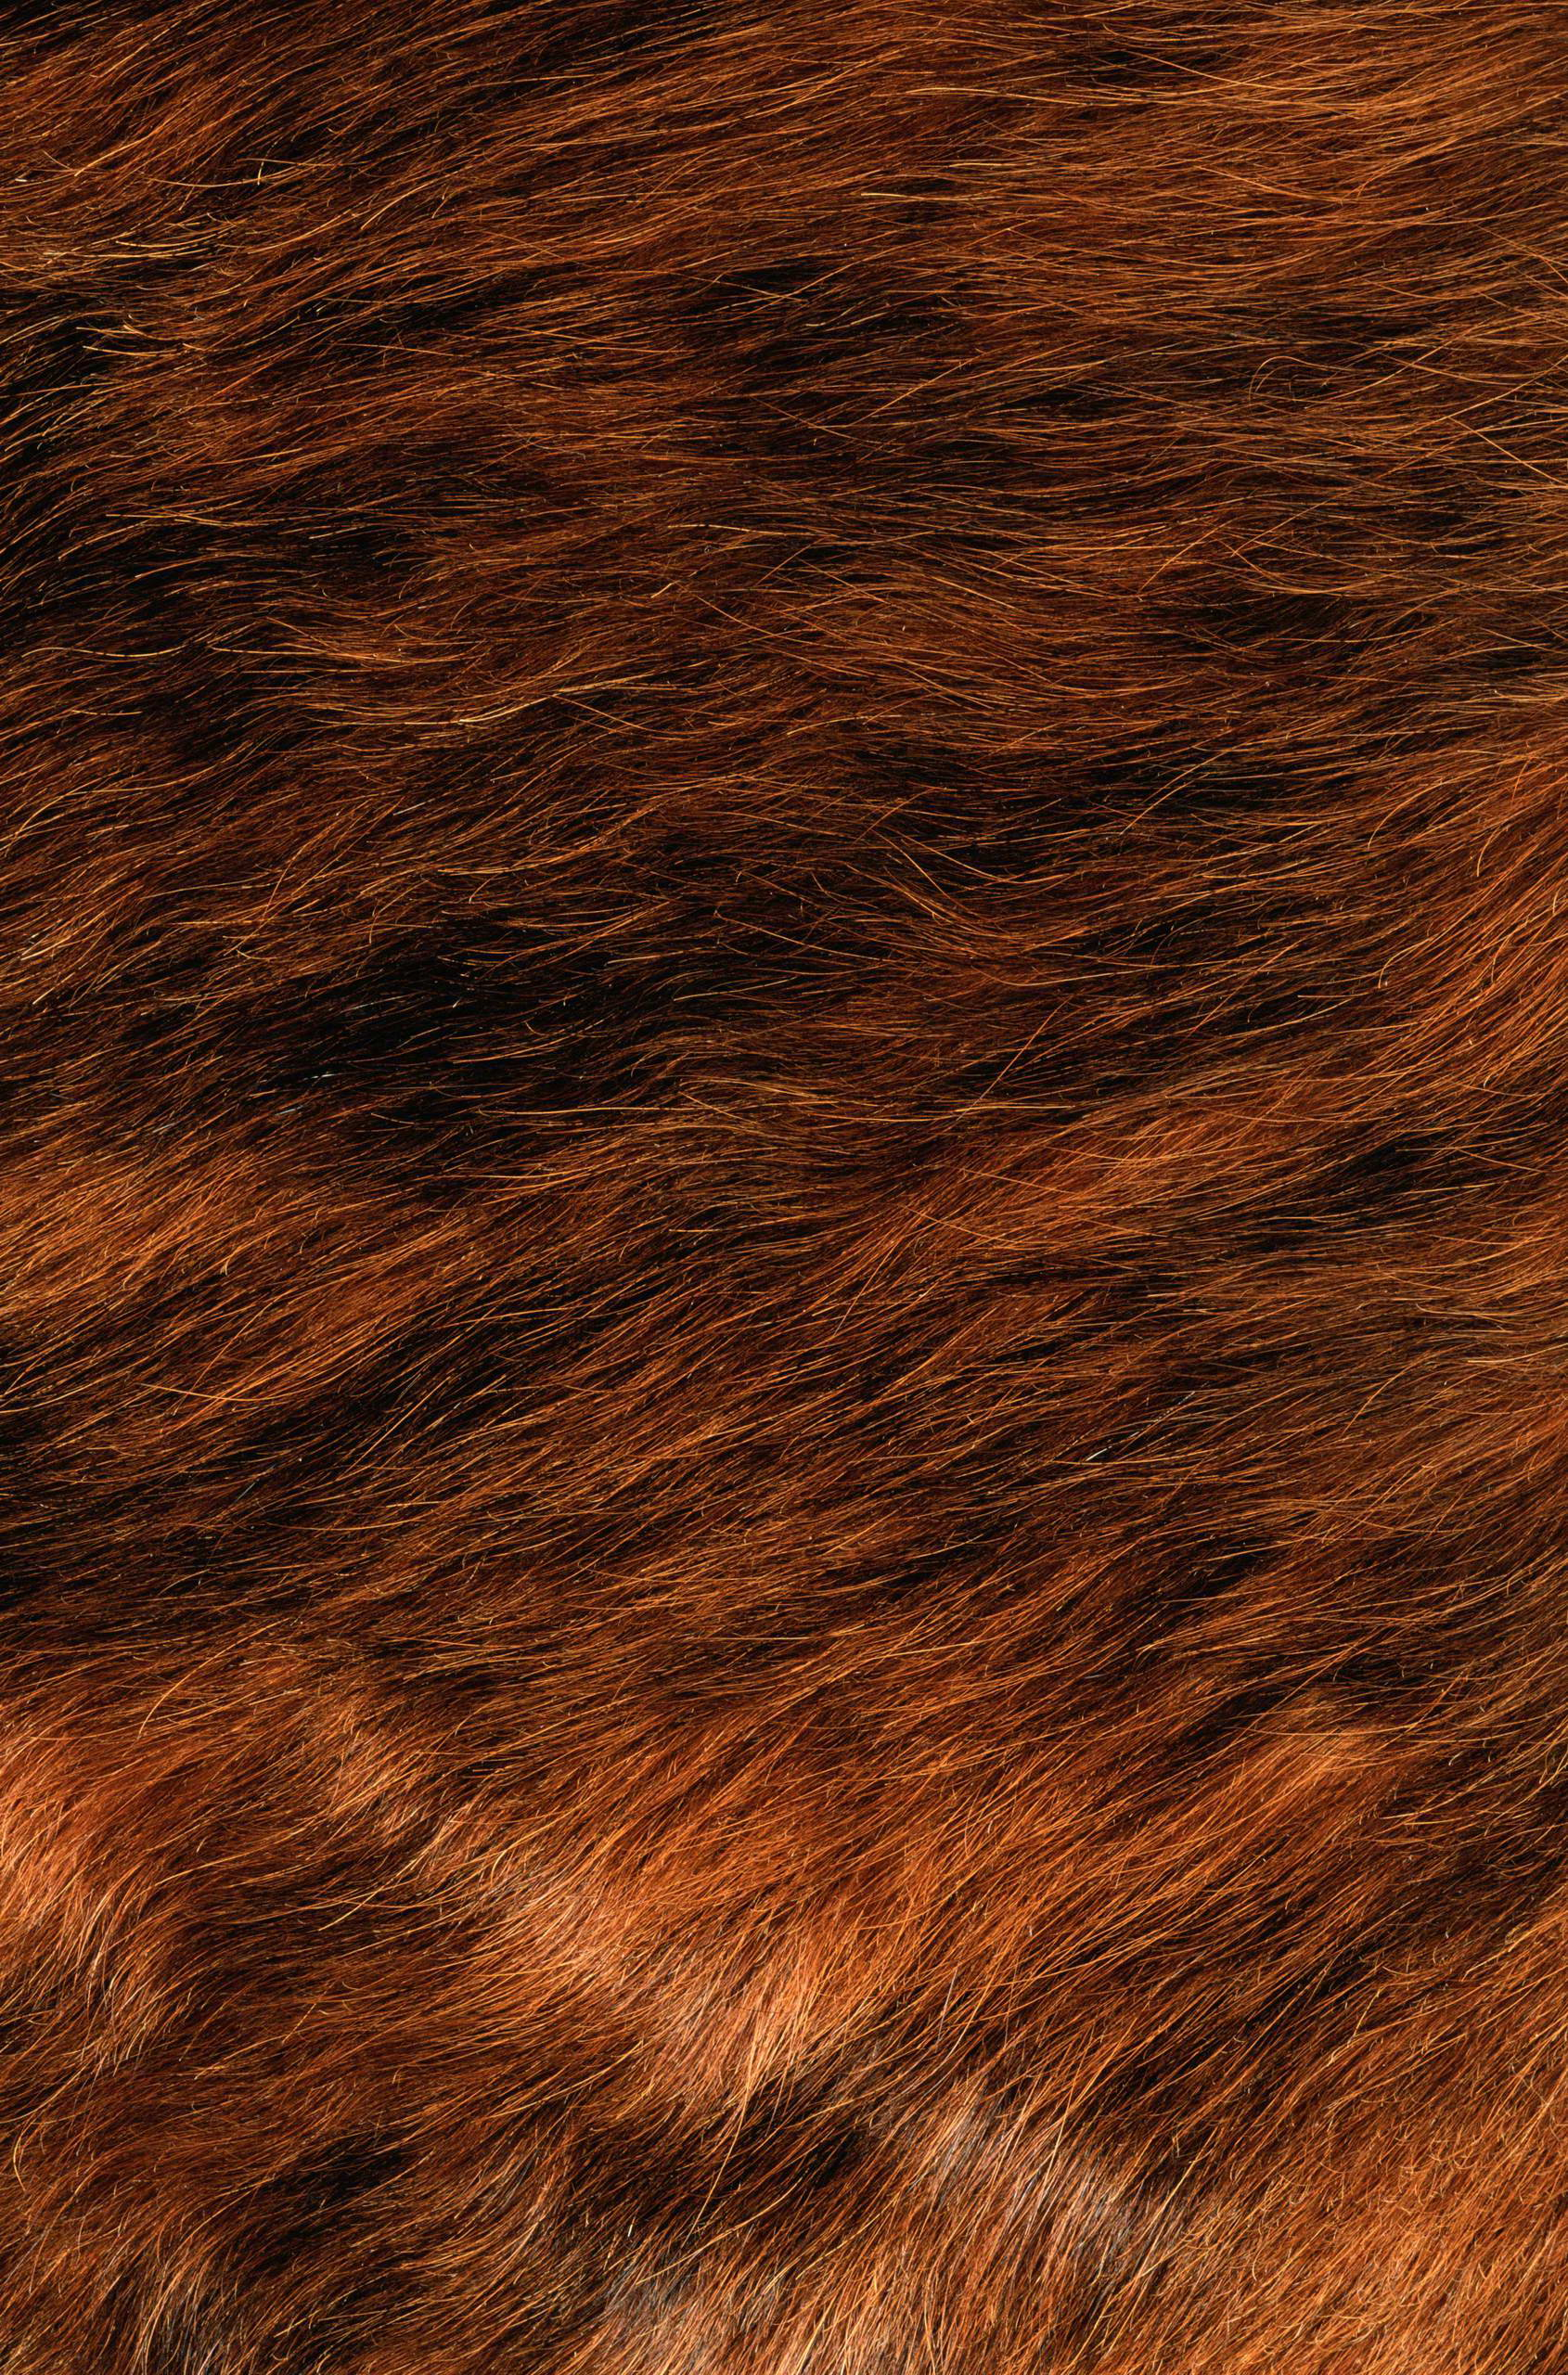 hair texture, background, orange hair texture, background